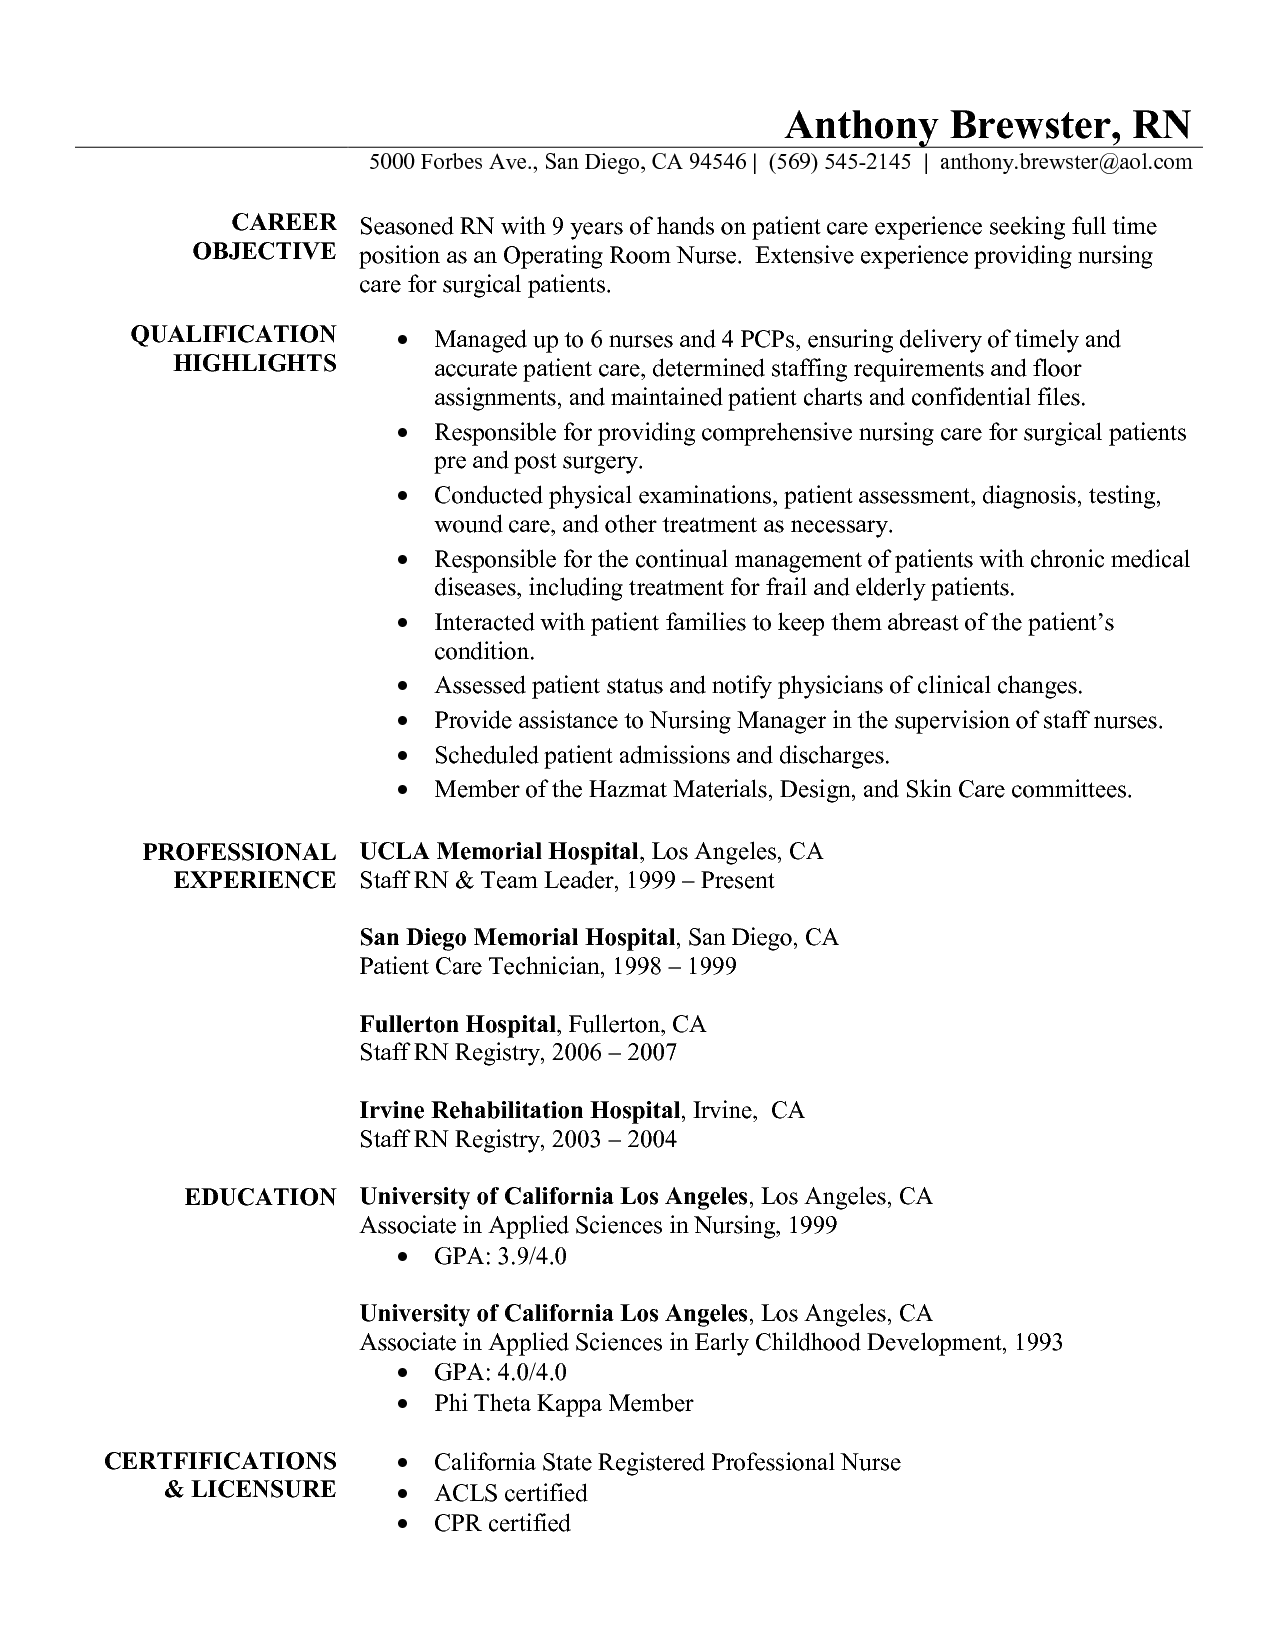 Google Templates Resume Curriculum Vitae Template Nurse  Google Search  Wade Resume